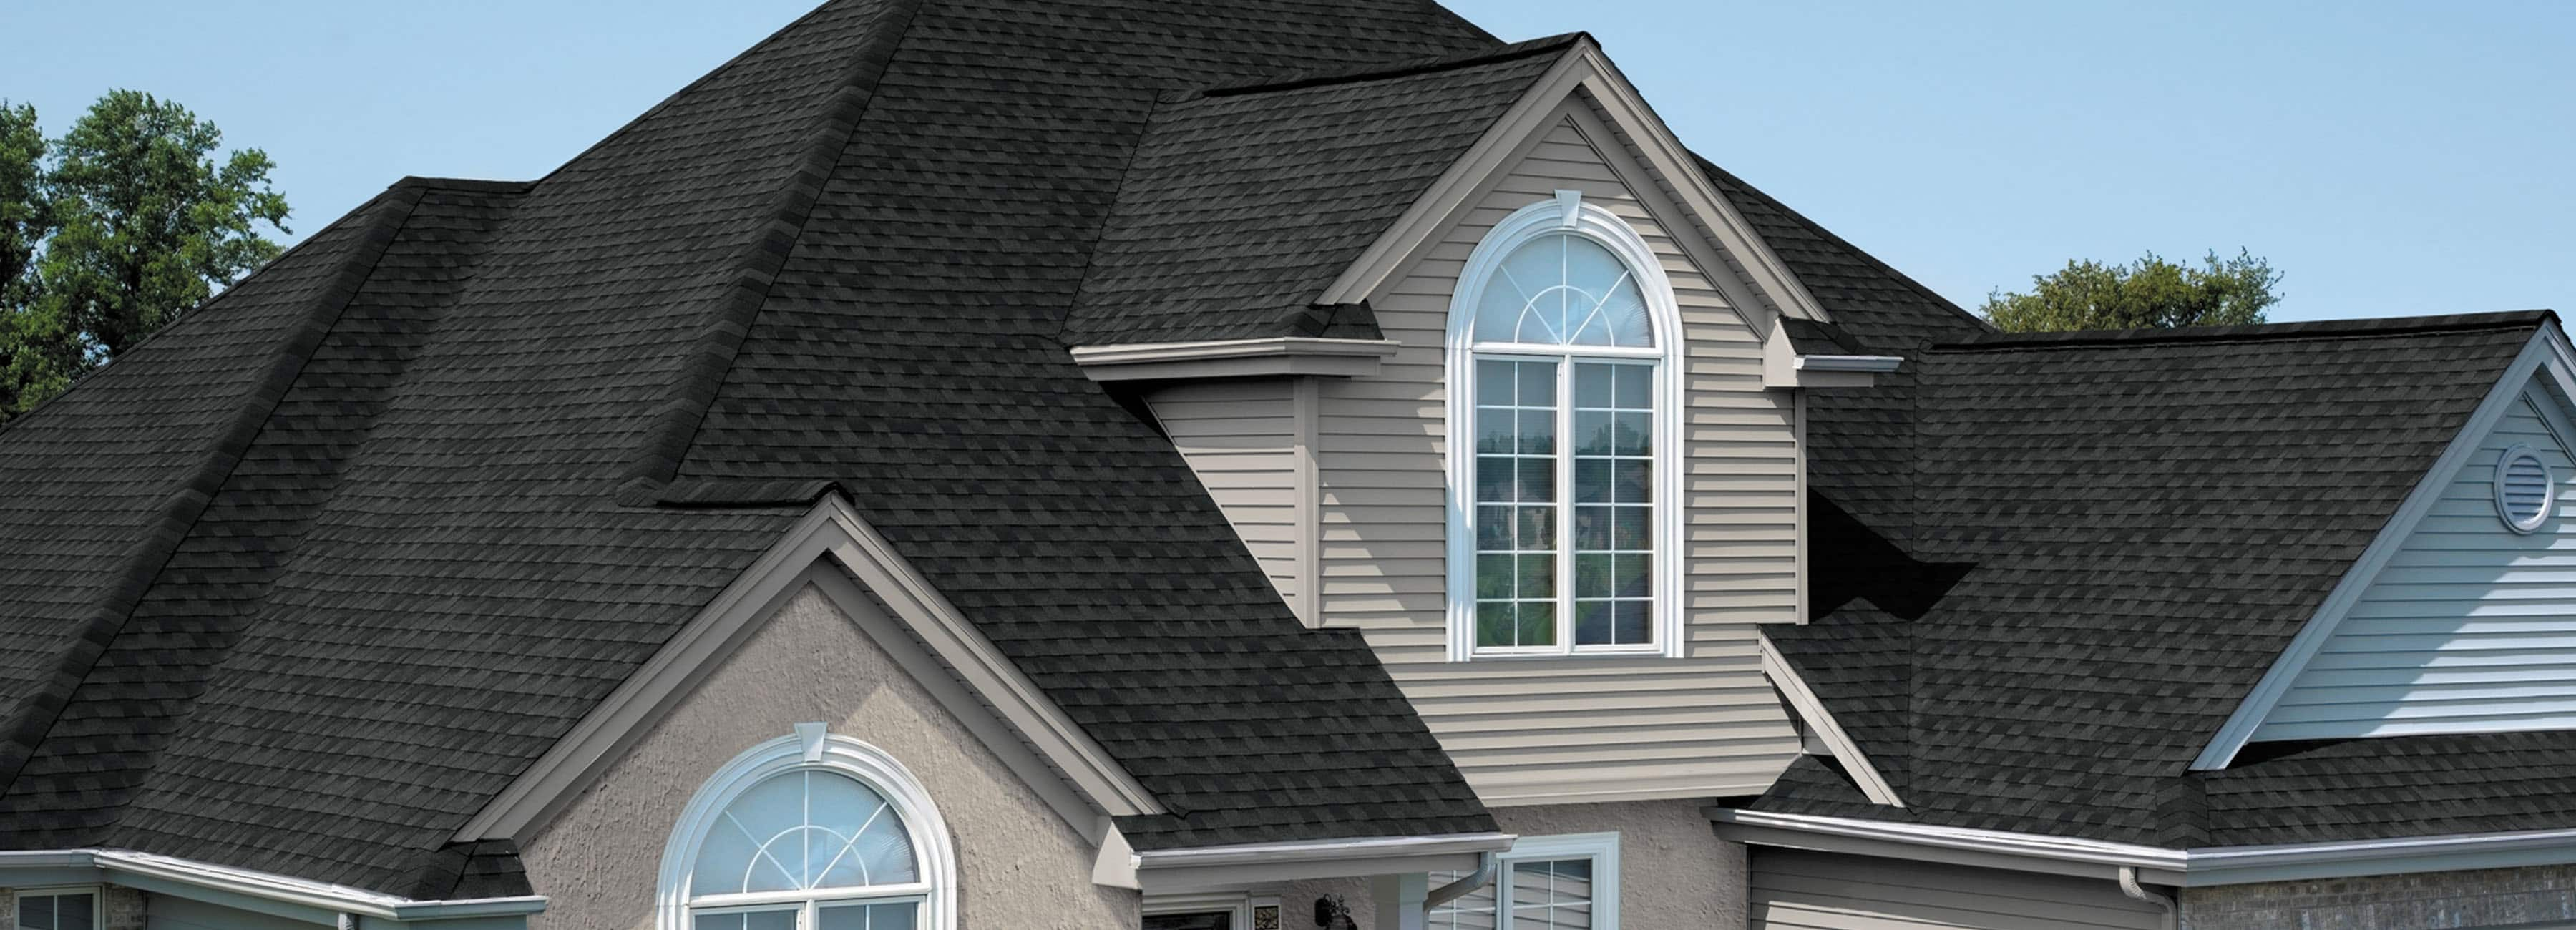 Gaf Roofing Gaf Timberline Natural Shadow Roofing Shingles